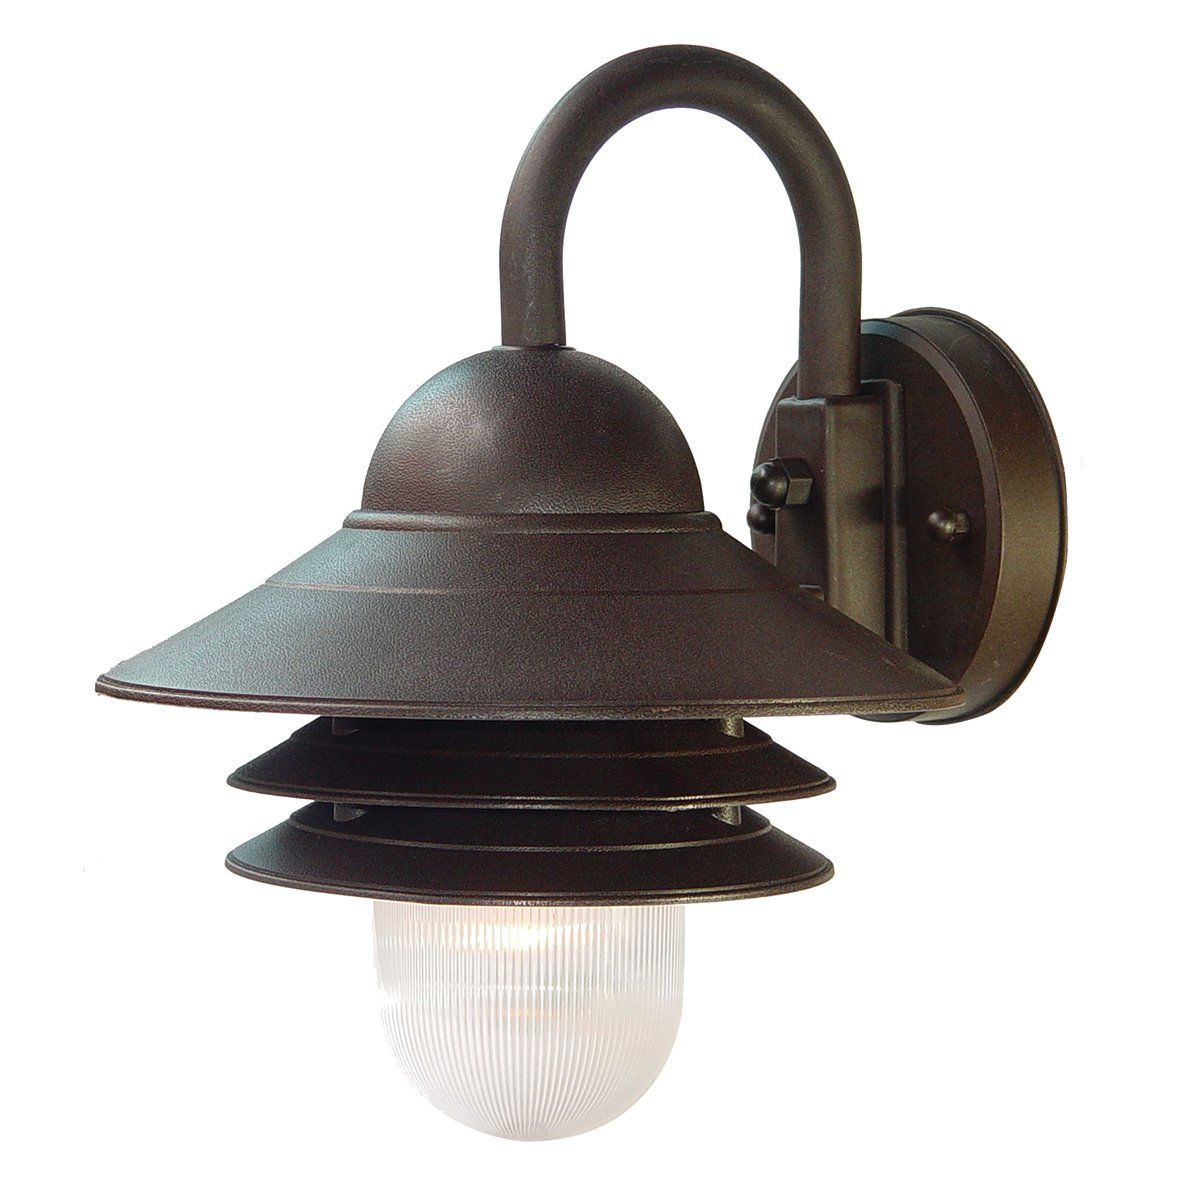 Acclaim Lighting Mariner Outdoor Sconce 39 49 Plastic 10 W 11 Deep 13 H Ulrating Wet With Images Outdoor Wall Mounted Lighting